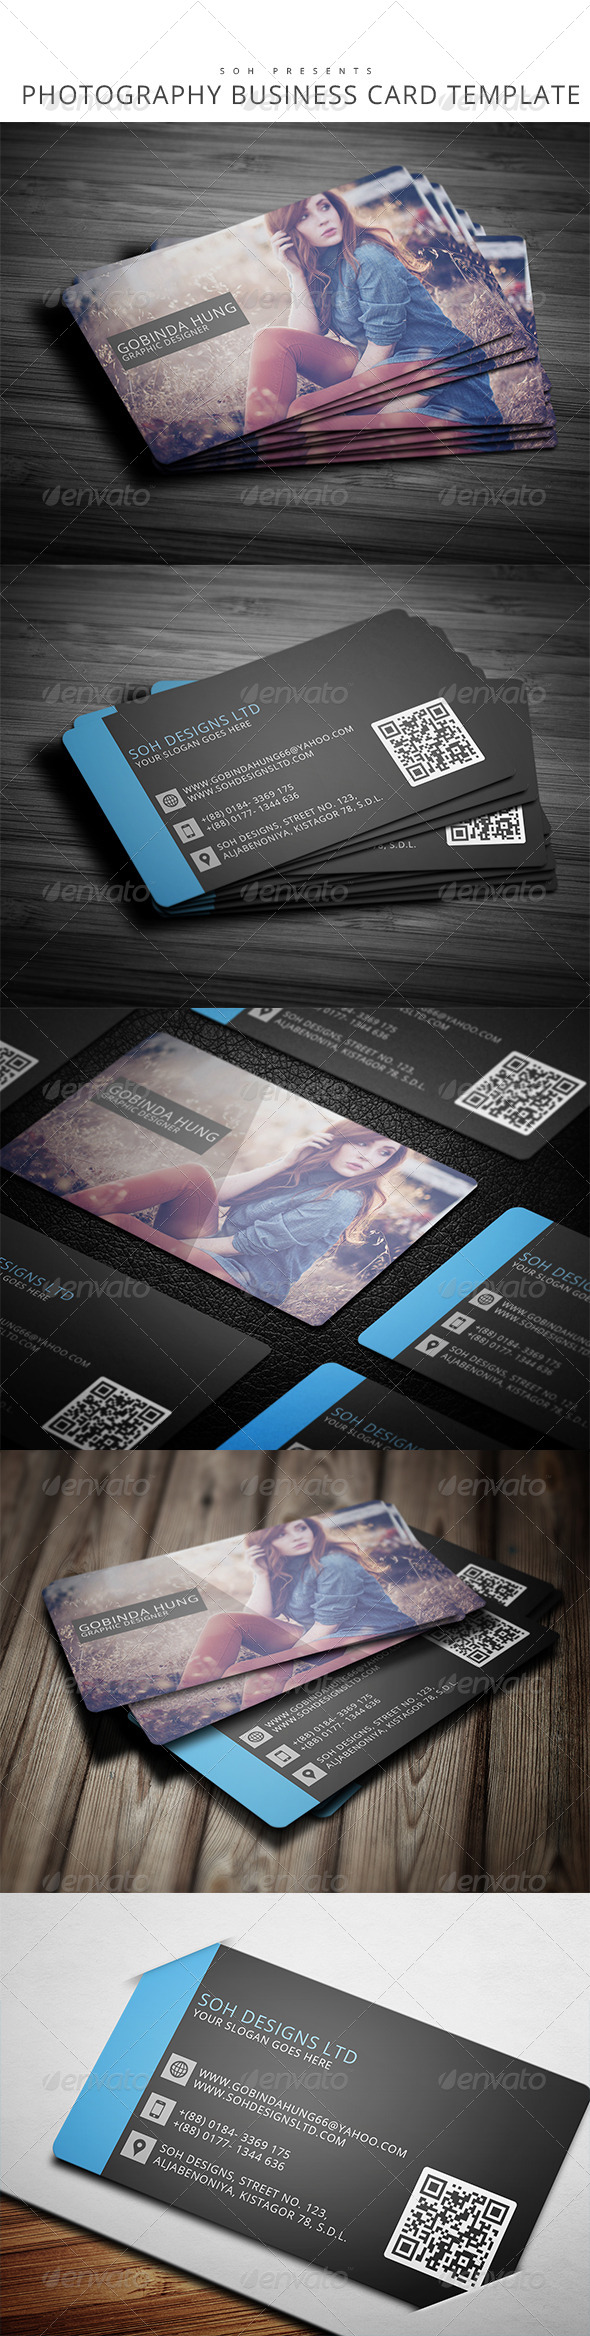 GraphicRiver Photography Business Card Template 8228355